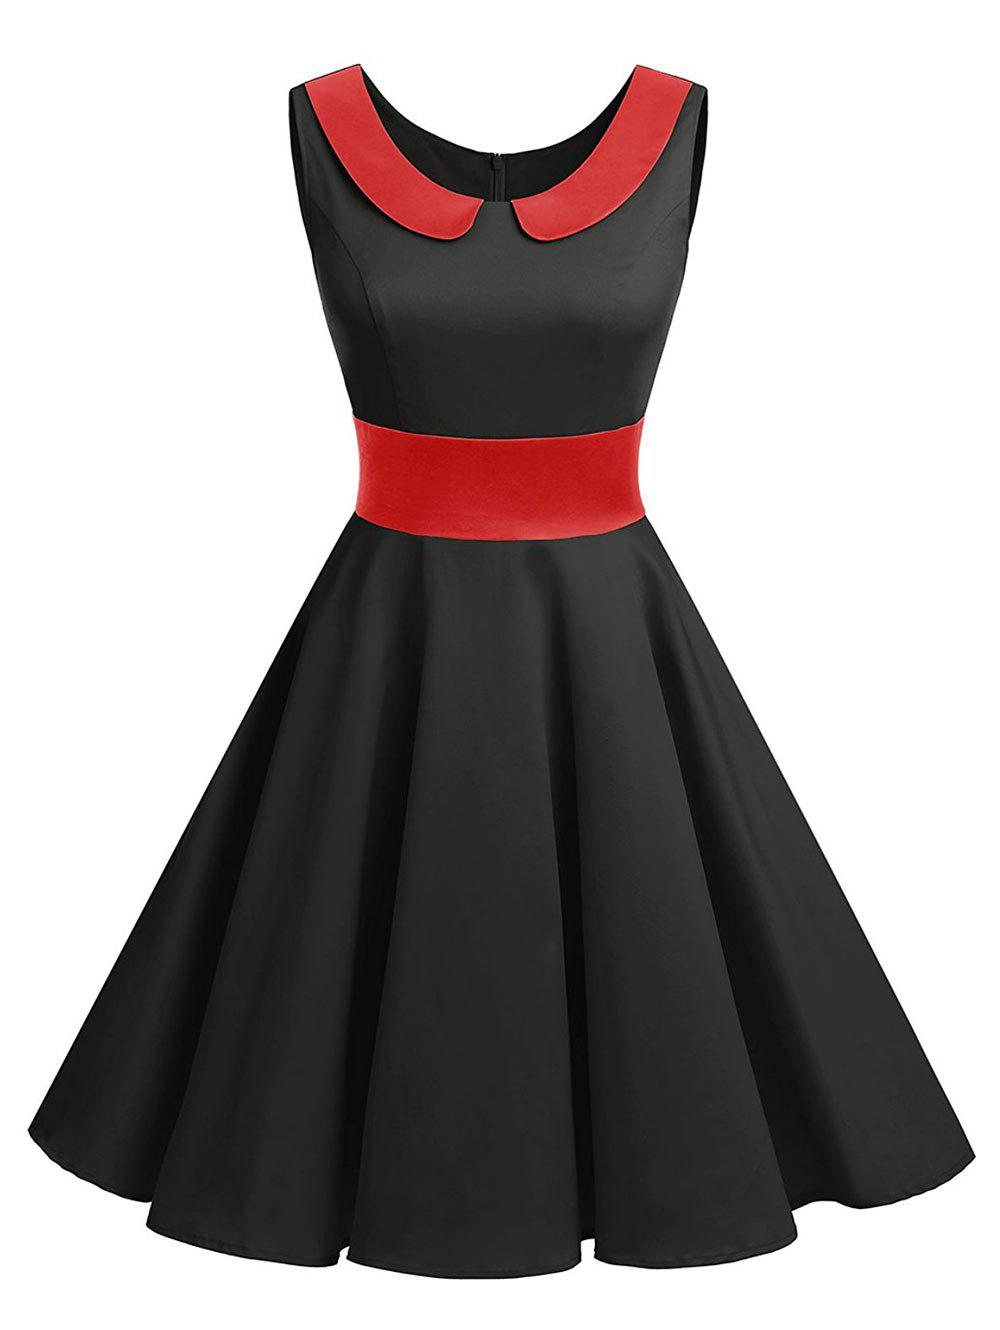 Vintage Peter Pan Collar Party Pin Up Dress - BLACK RED S